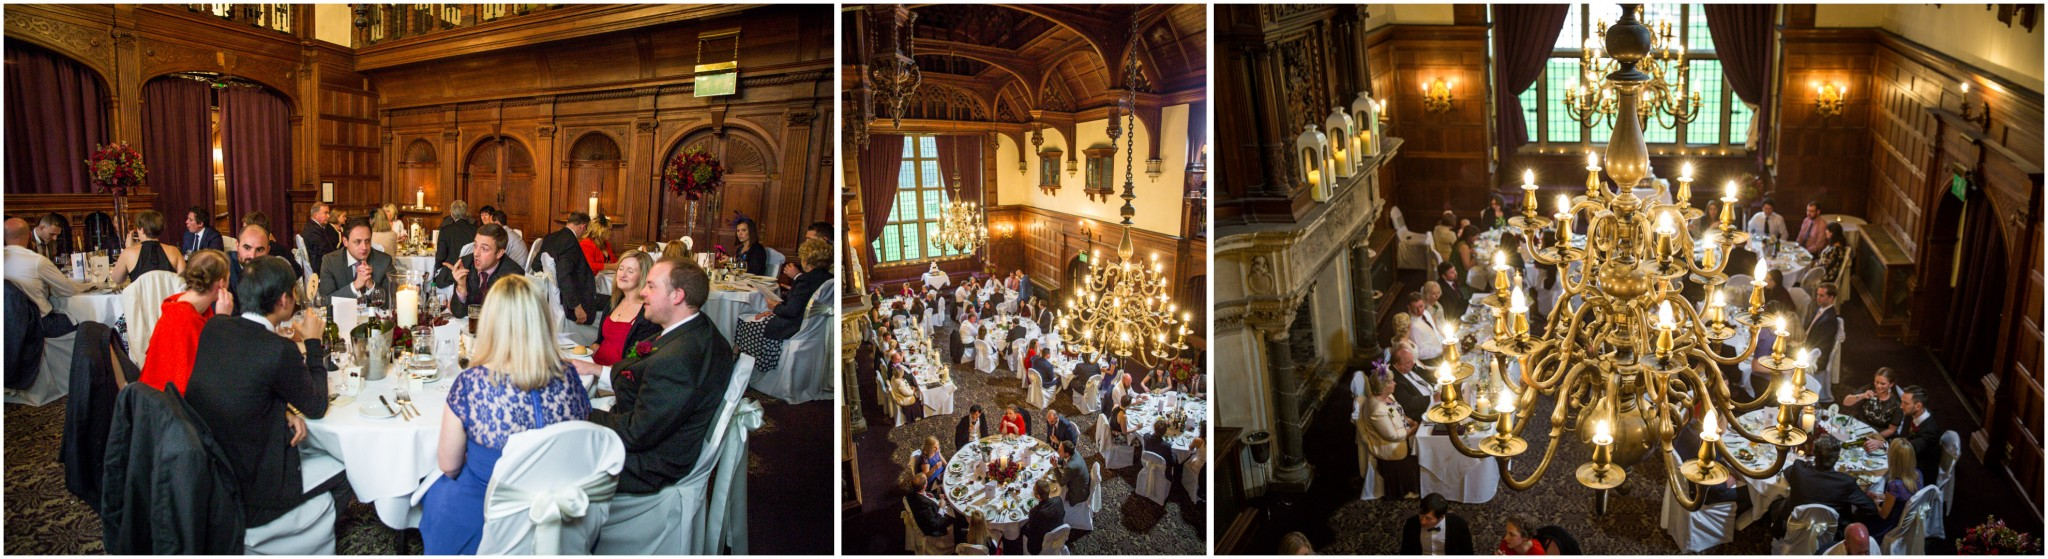 Rhinefield House Wedding Breakfast in banqueting hall